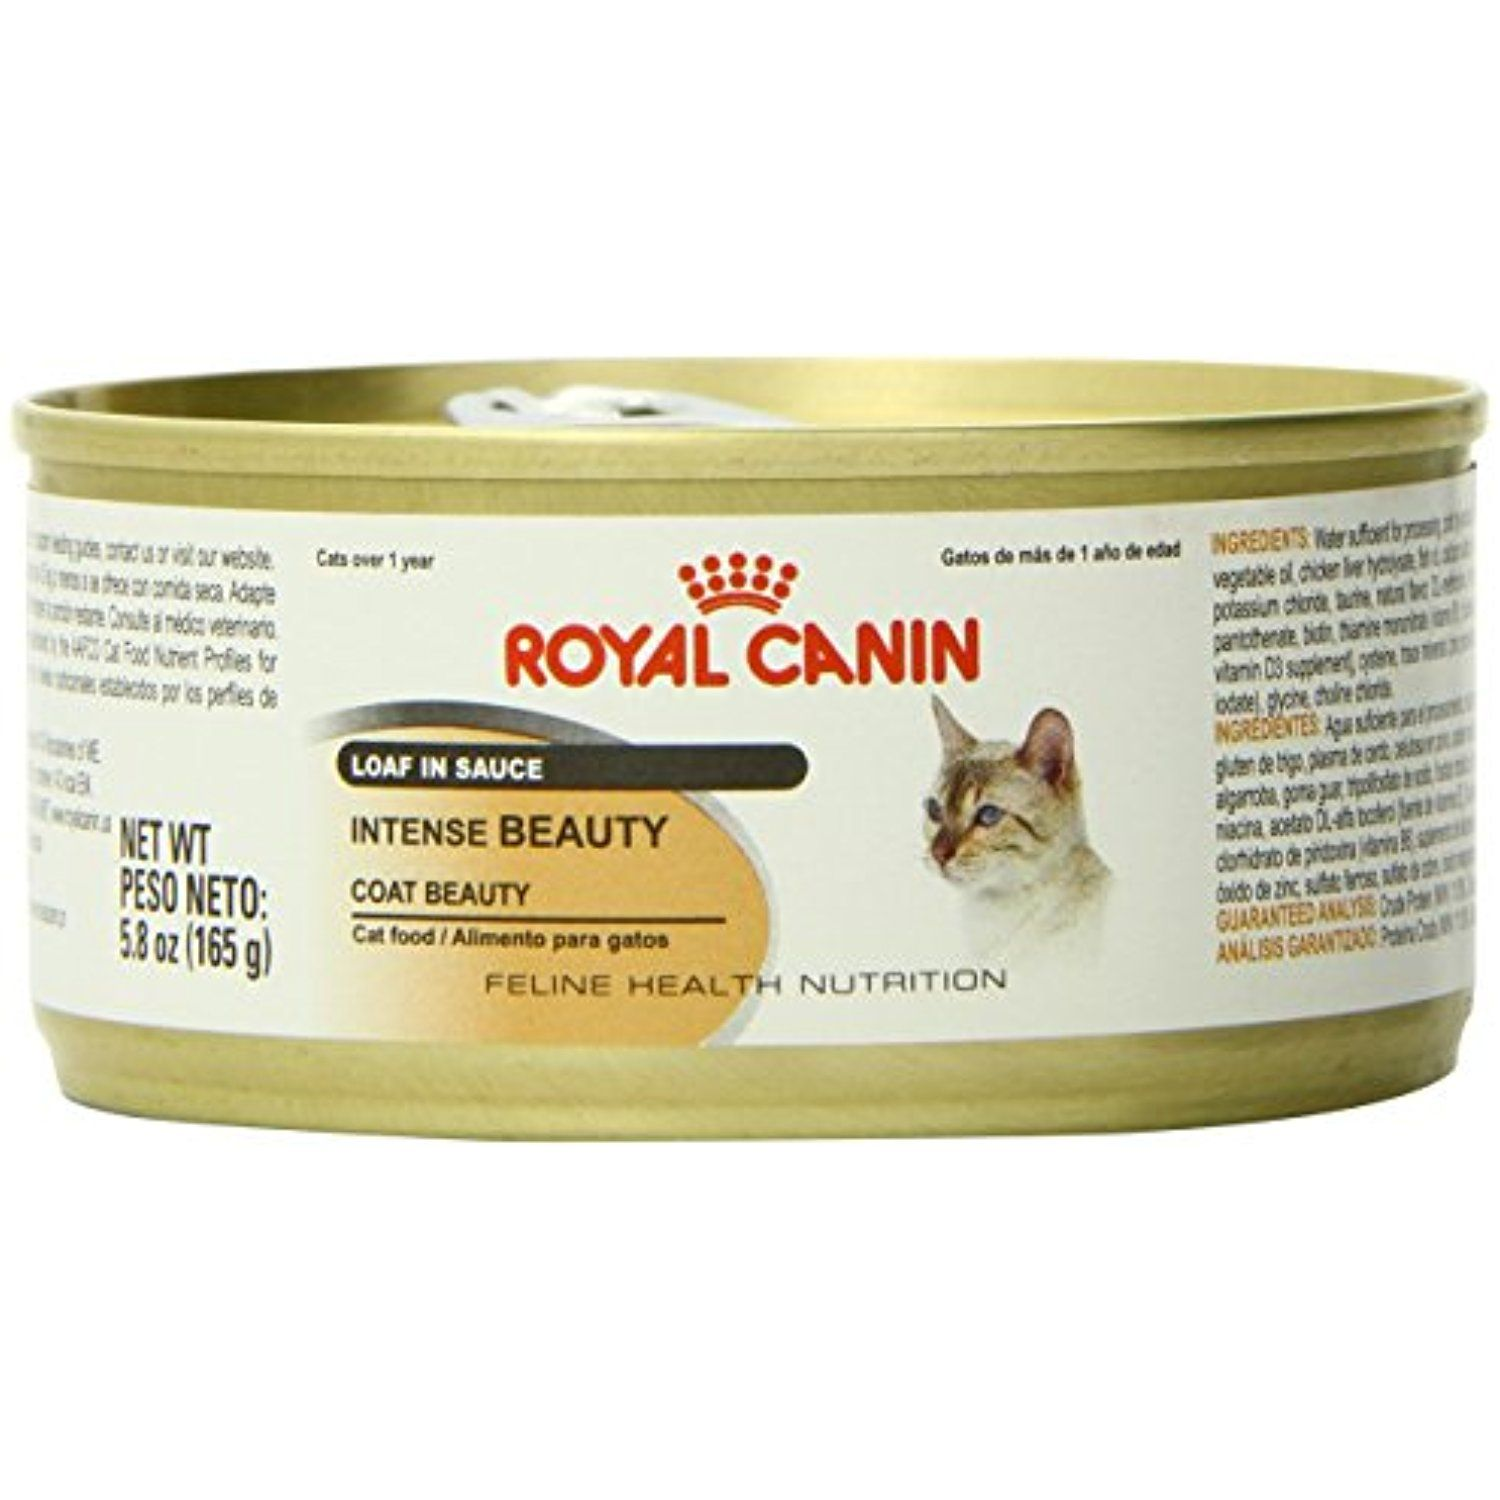 Royal Canin Feline Health Nutrition Intense Beauty Loaf In Sauce Canned Cat Food 24 Pack 5 8 Oz One Size Mor Cat Nutrition Feline Health Canned Cat Food